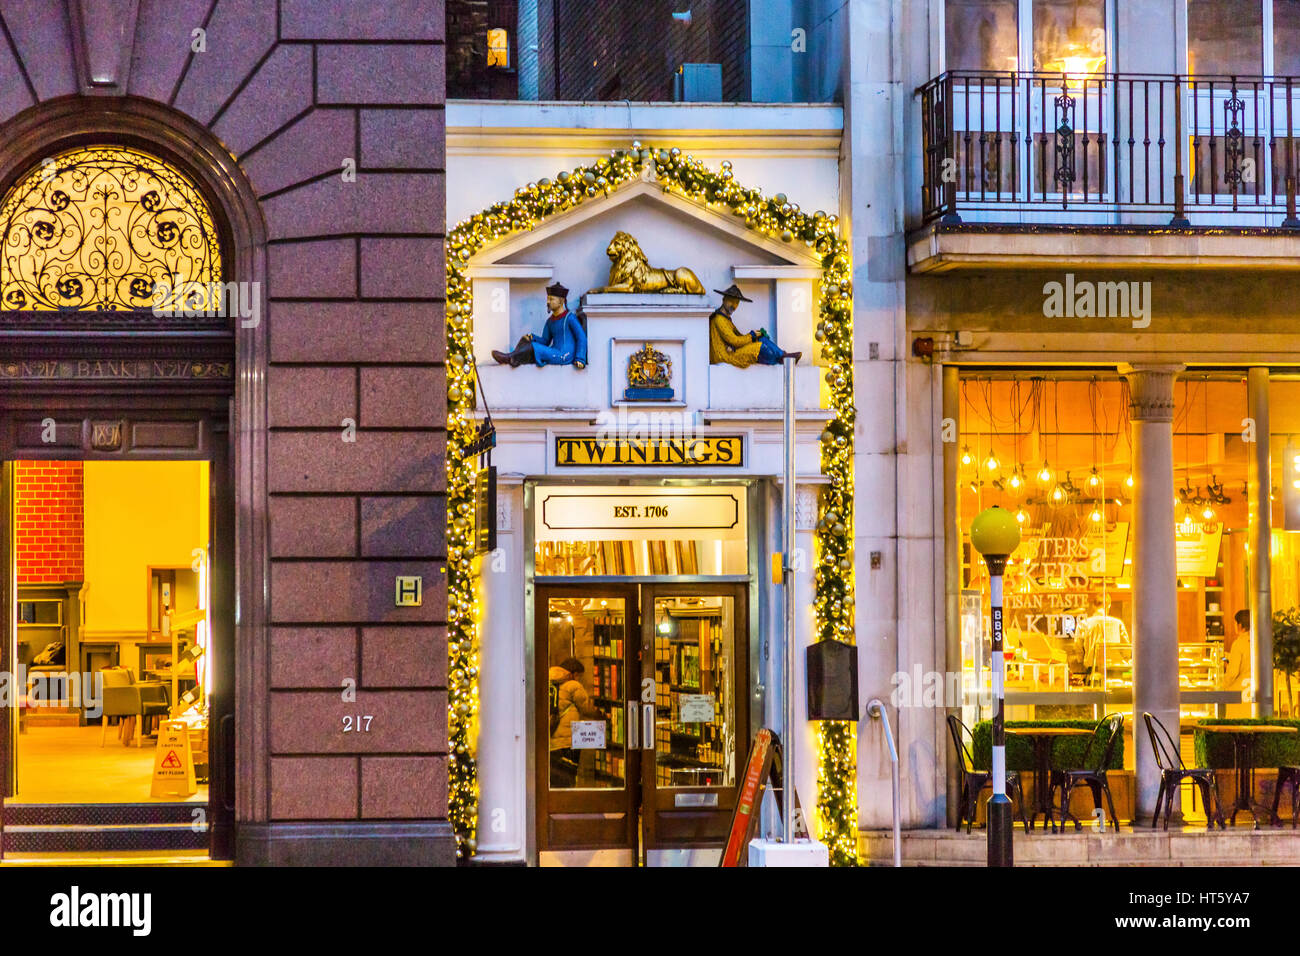 1bb992fb0ca Old City Street Twinnings Tea Shop Nght London England. Shops